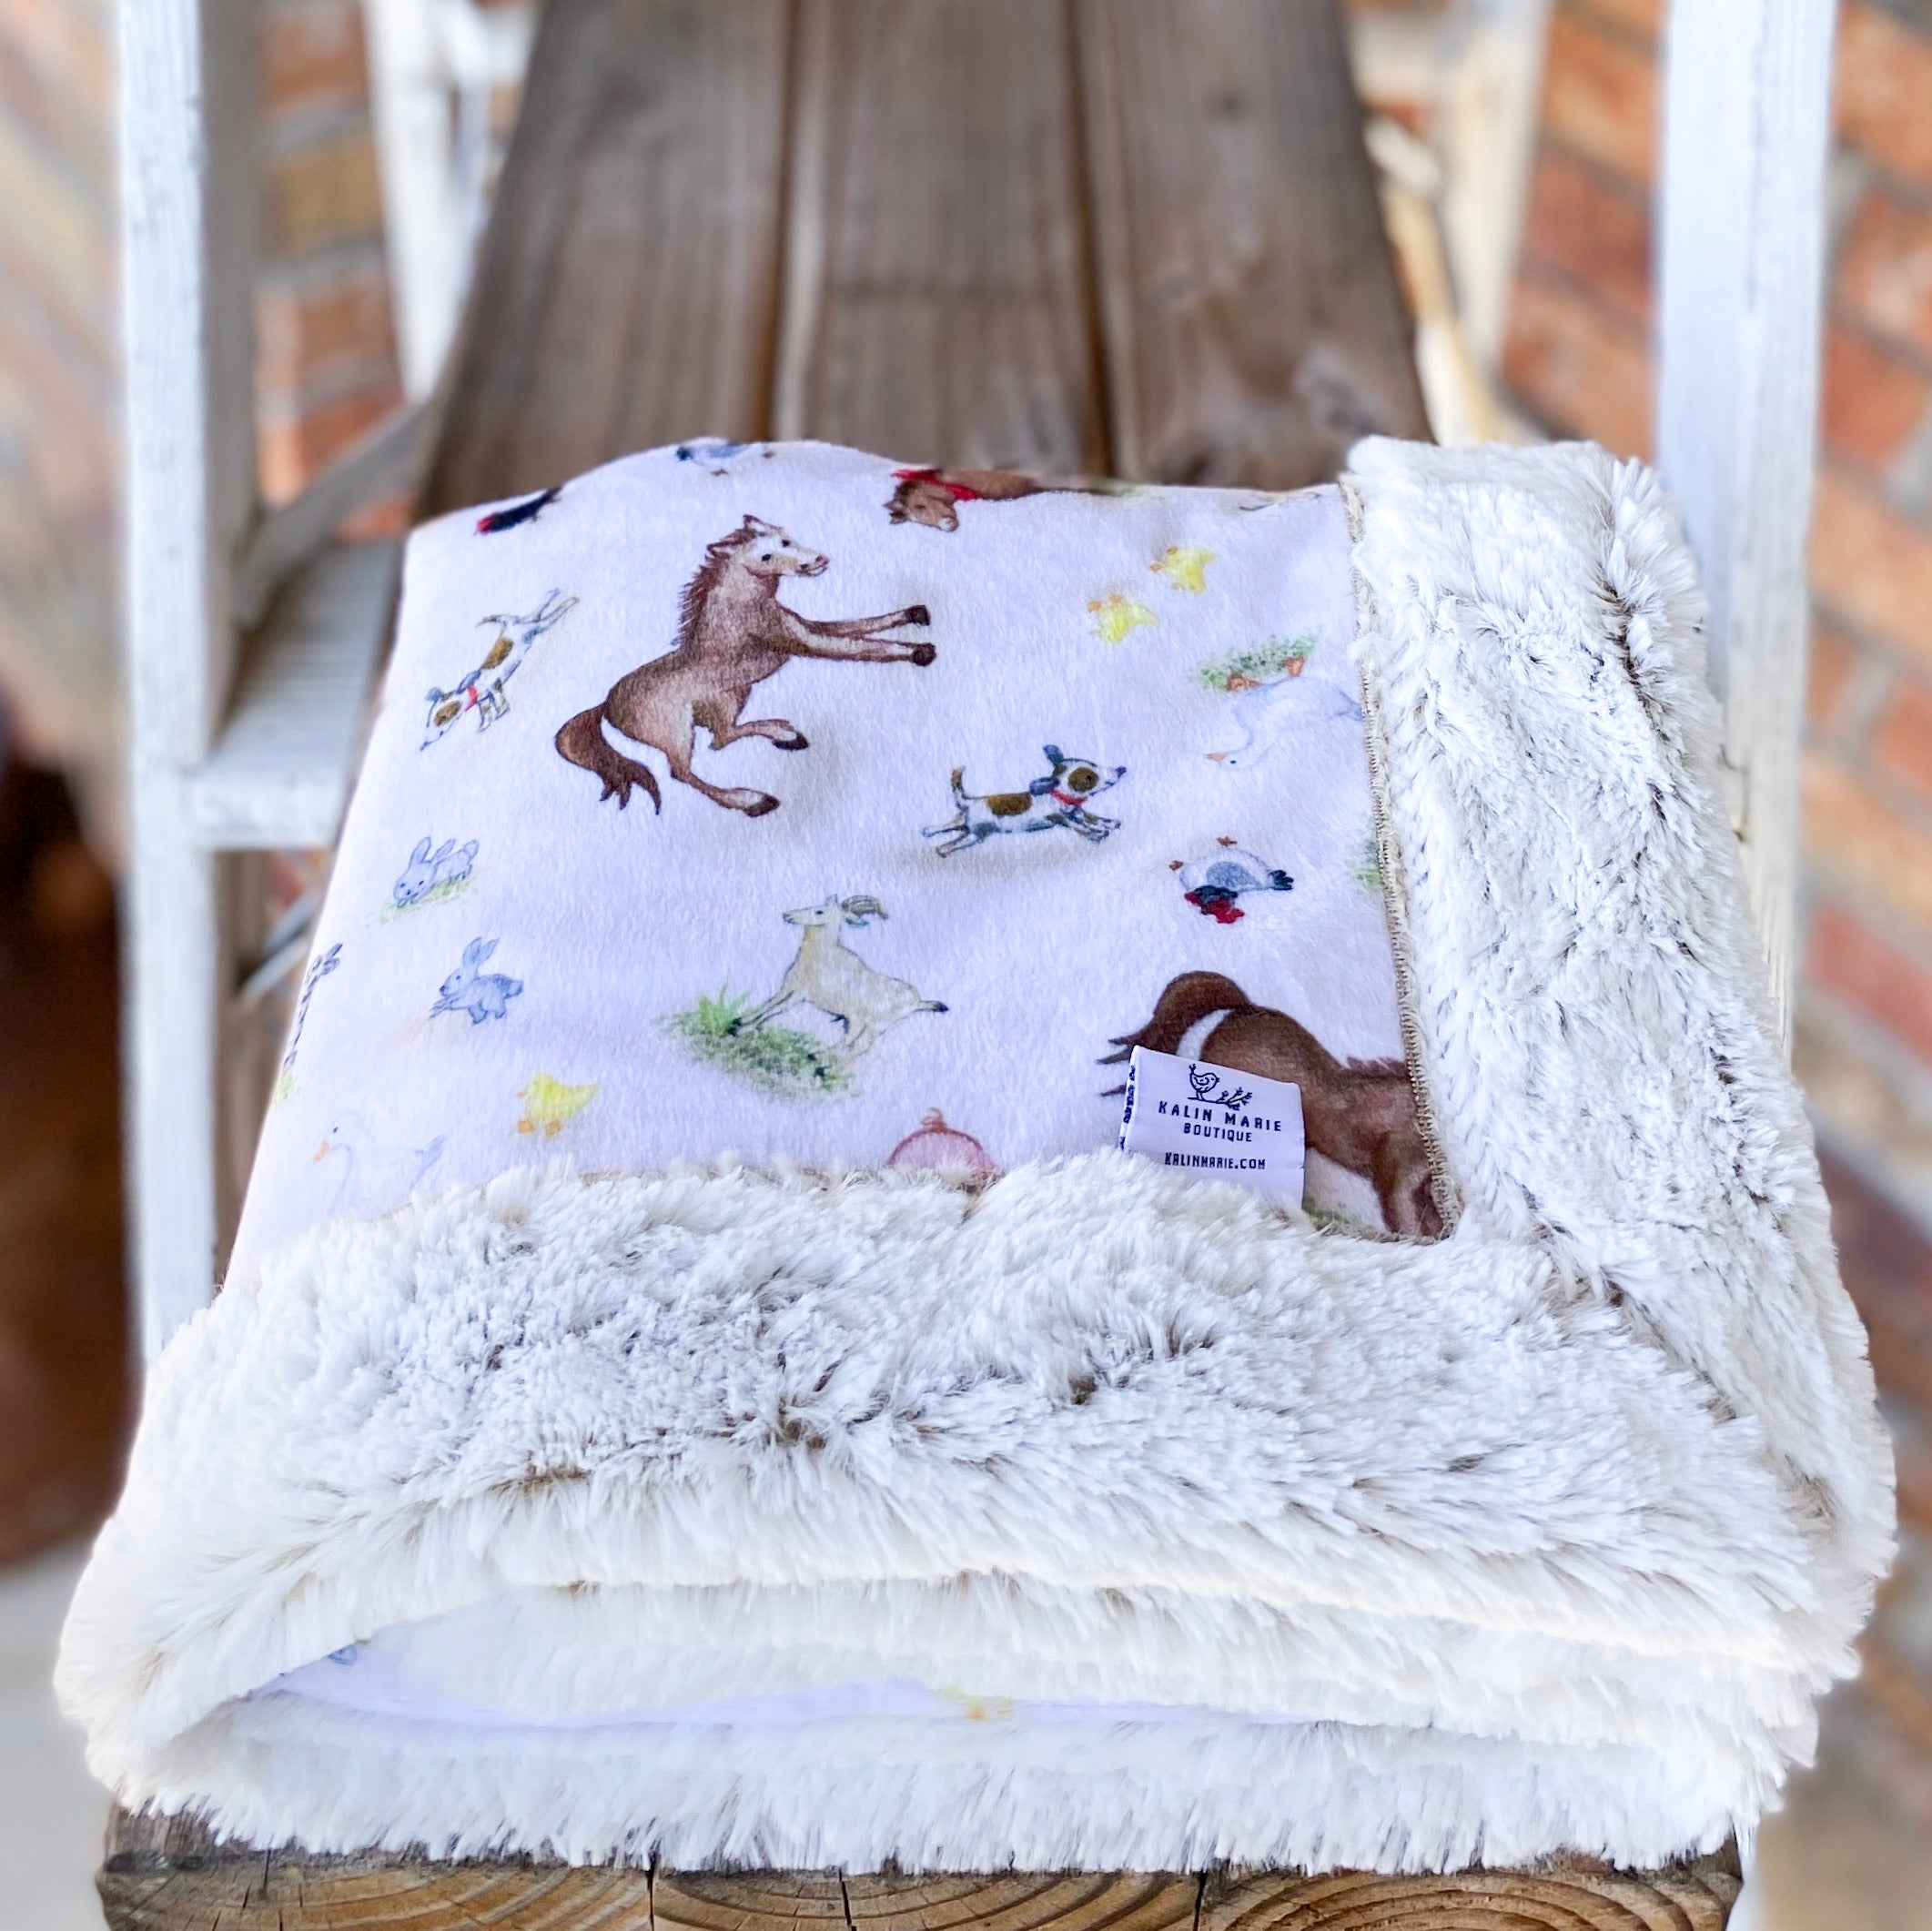 RTS Funny Farm & Sand Frost Luxe Snuggle Blankets